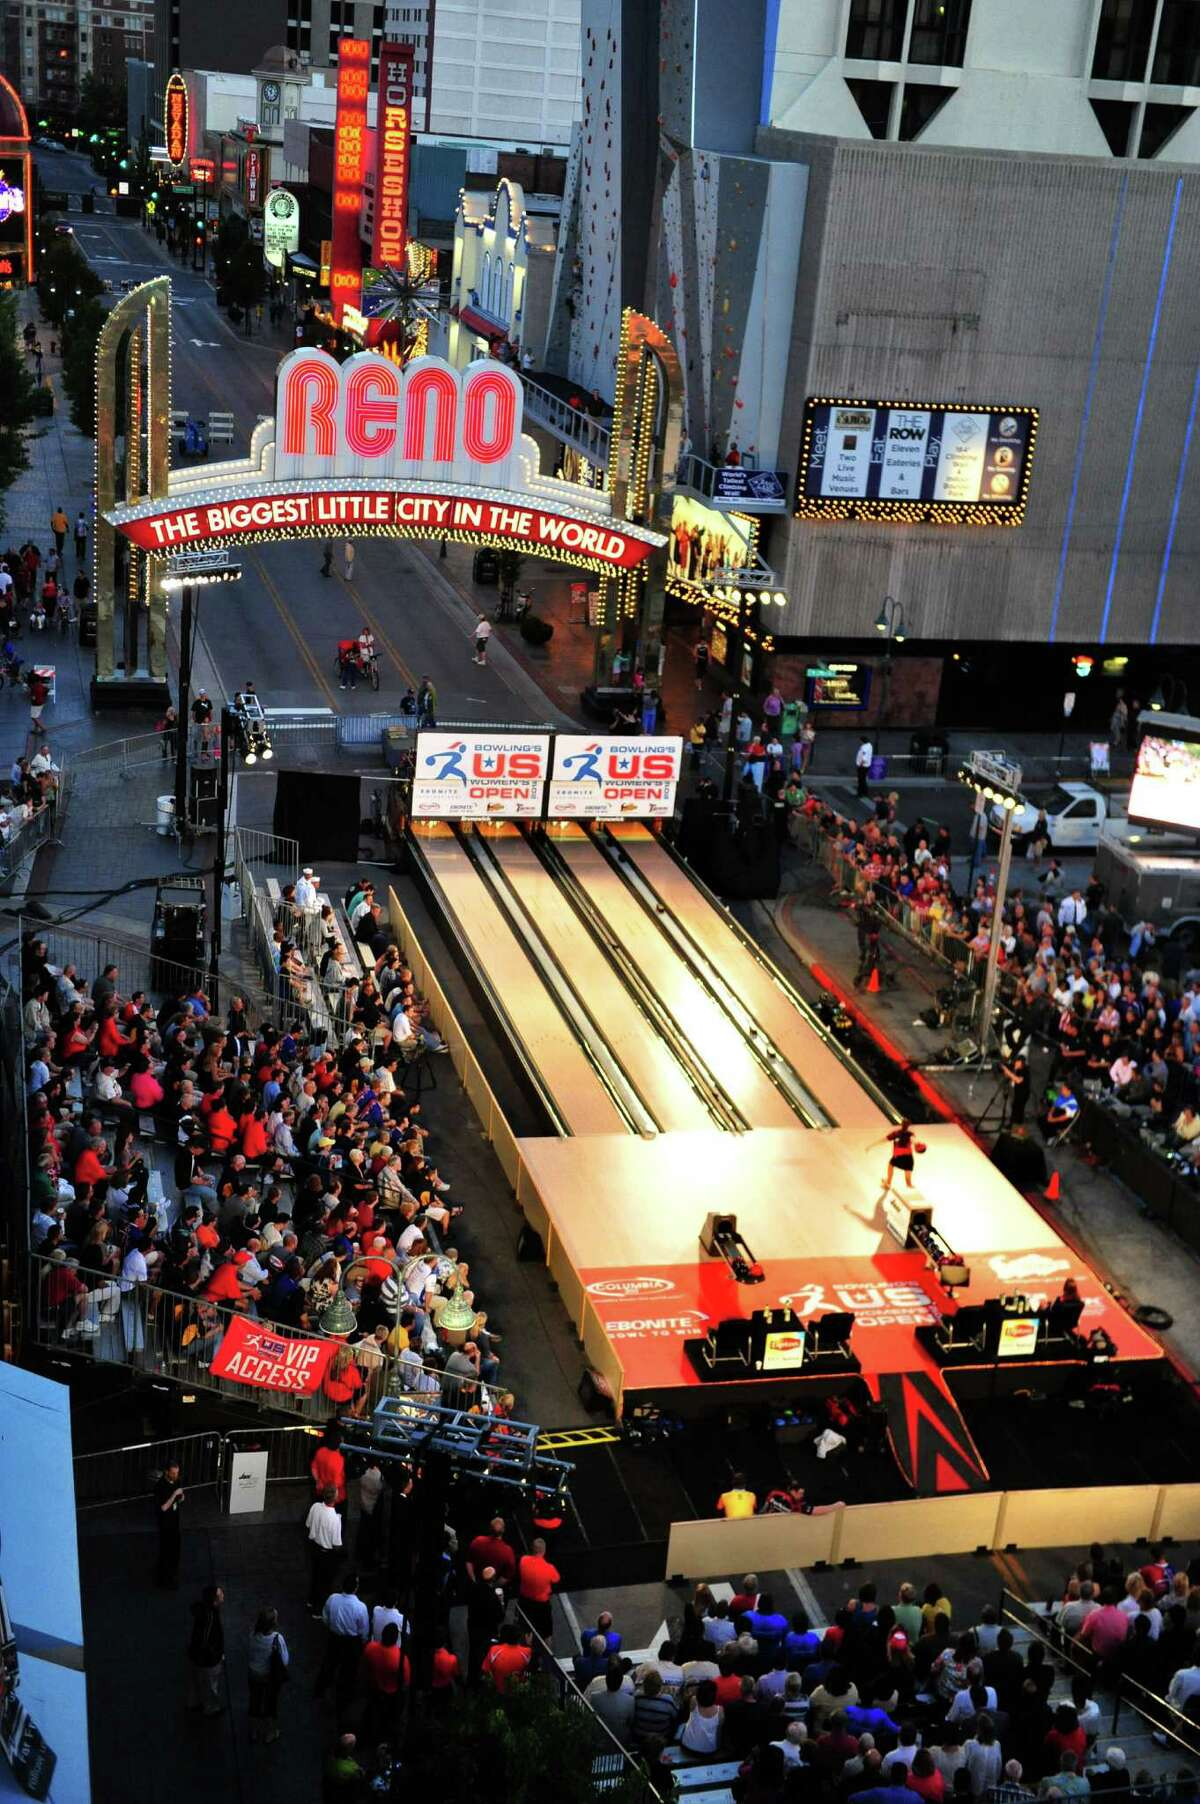 In this photo provided by the Bowling Proprietors' Association of America, professional sports history was made Wednesday night June 27, 2012 when Bowling?'s U.S. Women?'s Open was held outdoors on Virginia Street under the iconic Reno Arch in Reno, Nev. Kelly Kulick of Union, N.J., defeated Missy Parkin of Lake Forest, Calif., to win the major title. (AP Photo/BPAA, Tim Dunn)